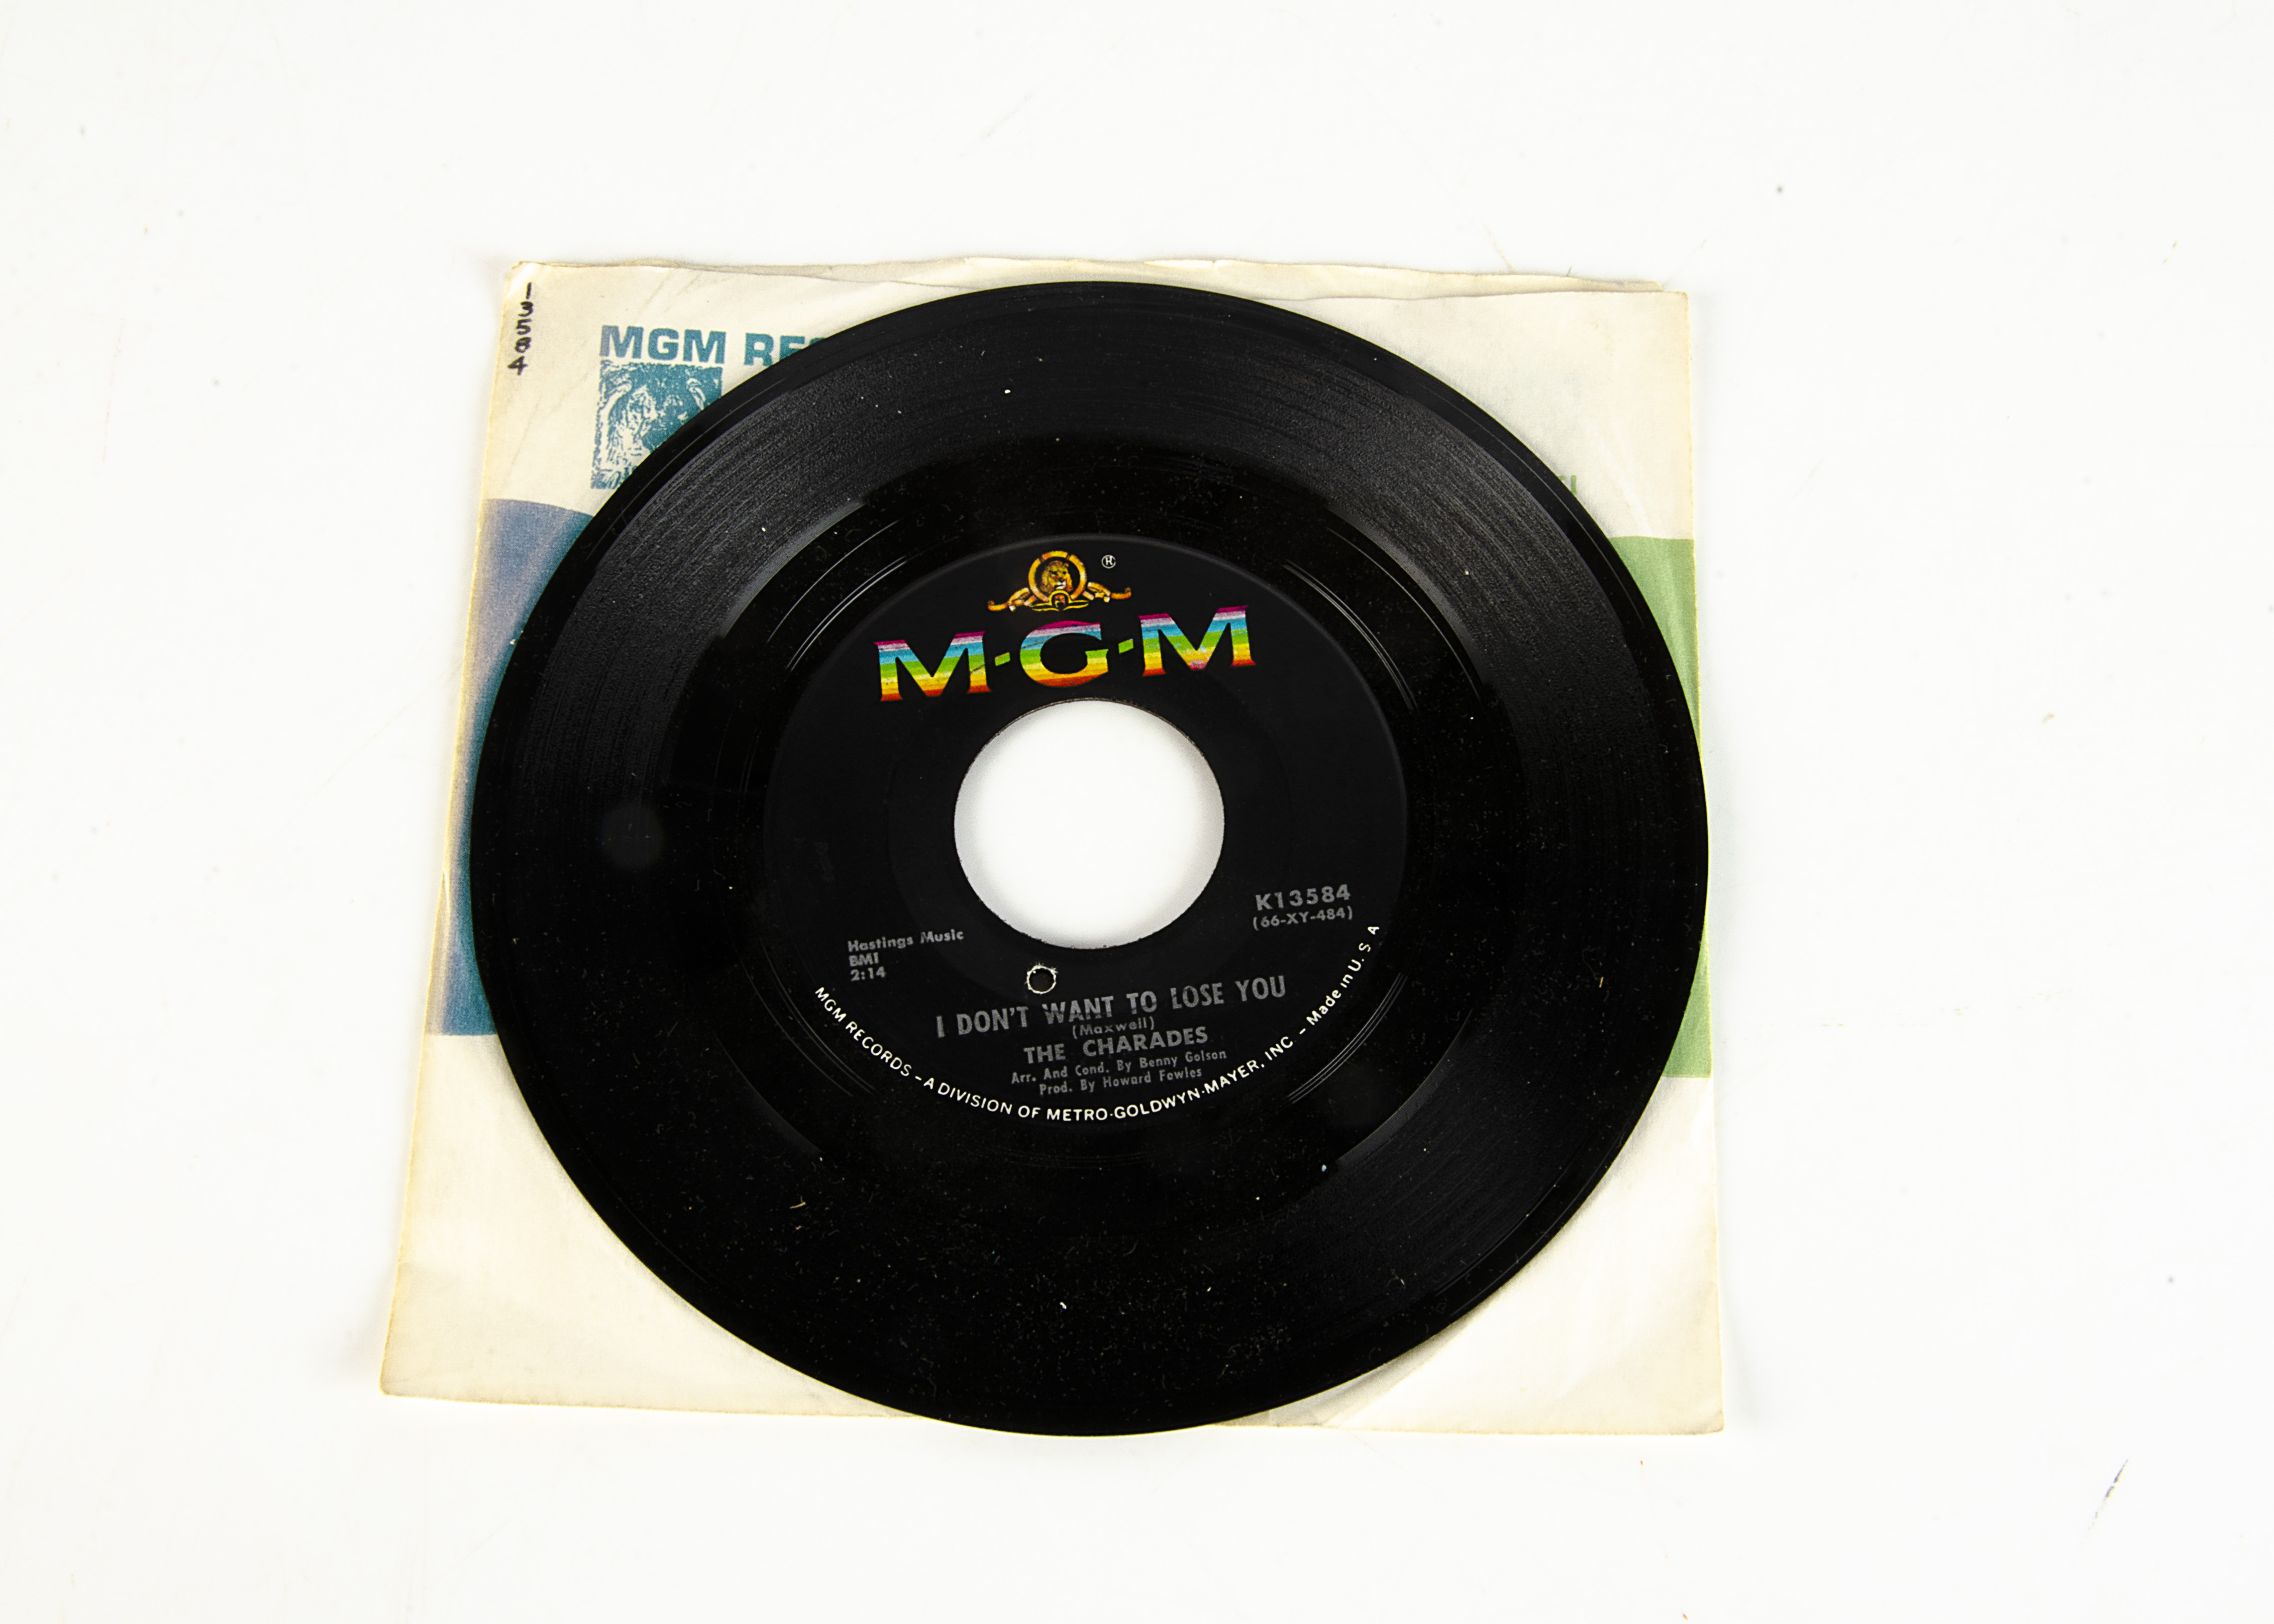 """The Charades 7"""" Single, I Don't Want To Lose You 7"""" Single b/w Never Set Me Free - USA release - Image 2 of 2"""